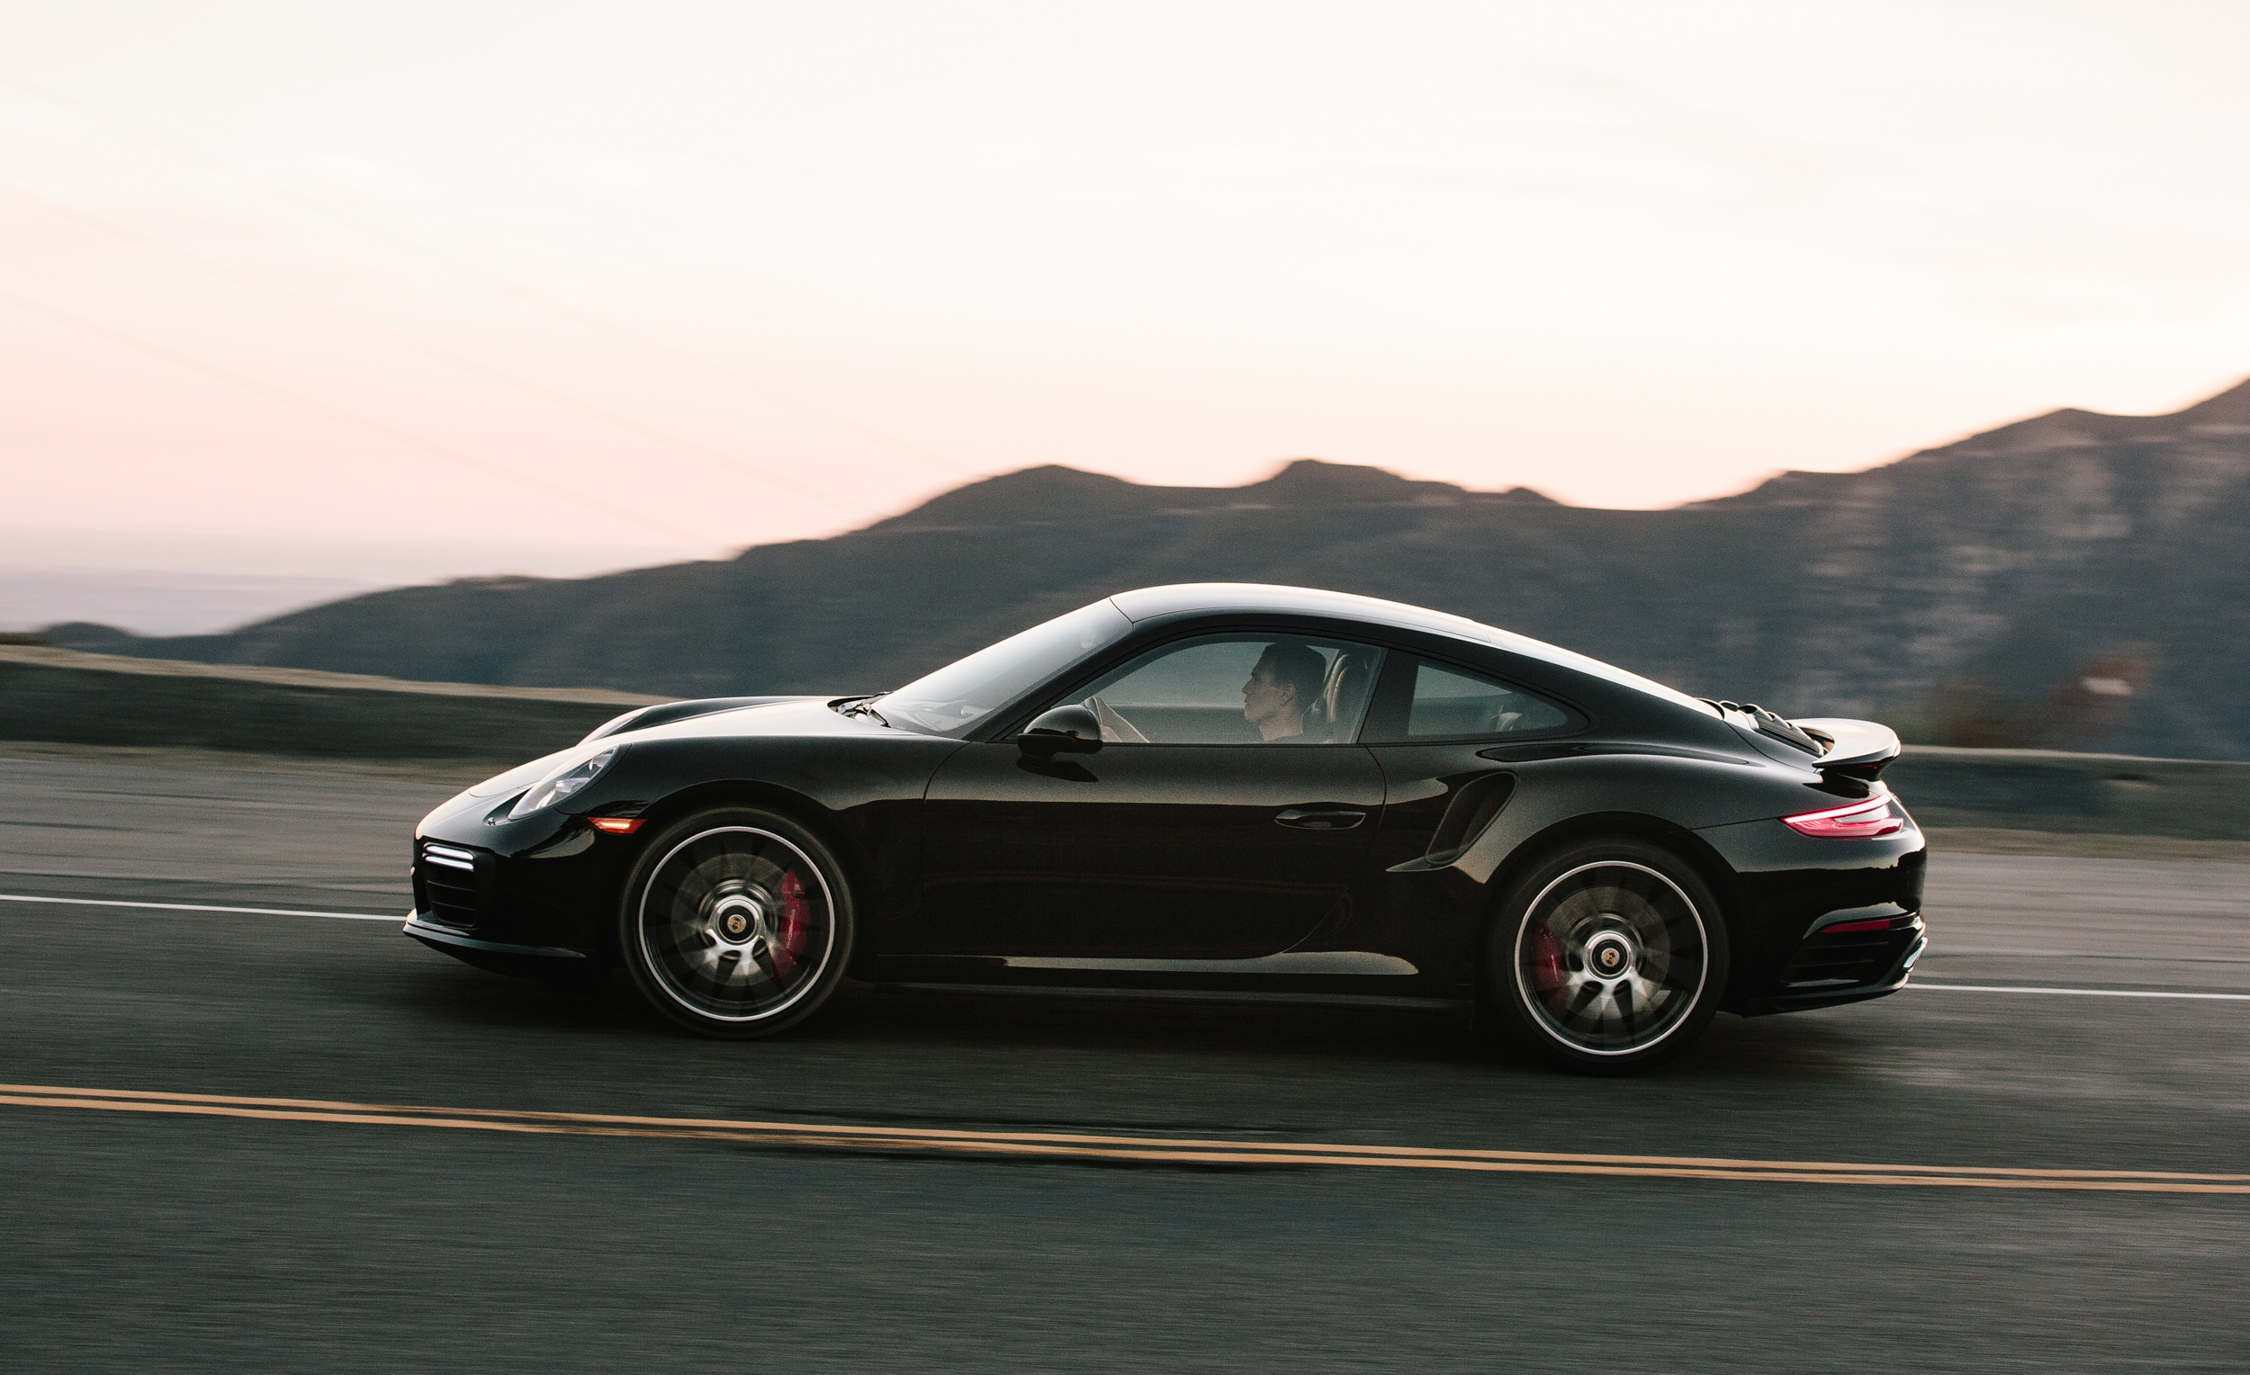 2017 Porsche 911 Turbo Test Drive Side (Photo 43 of 58)